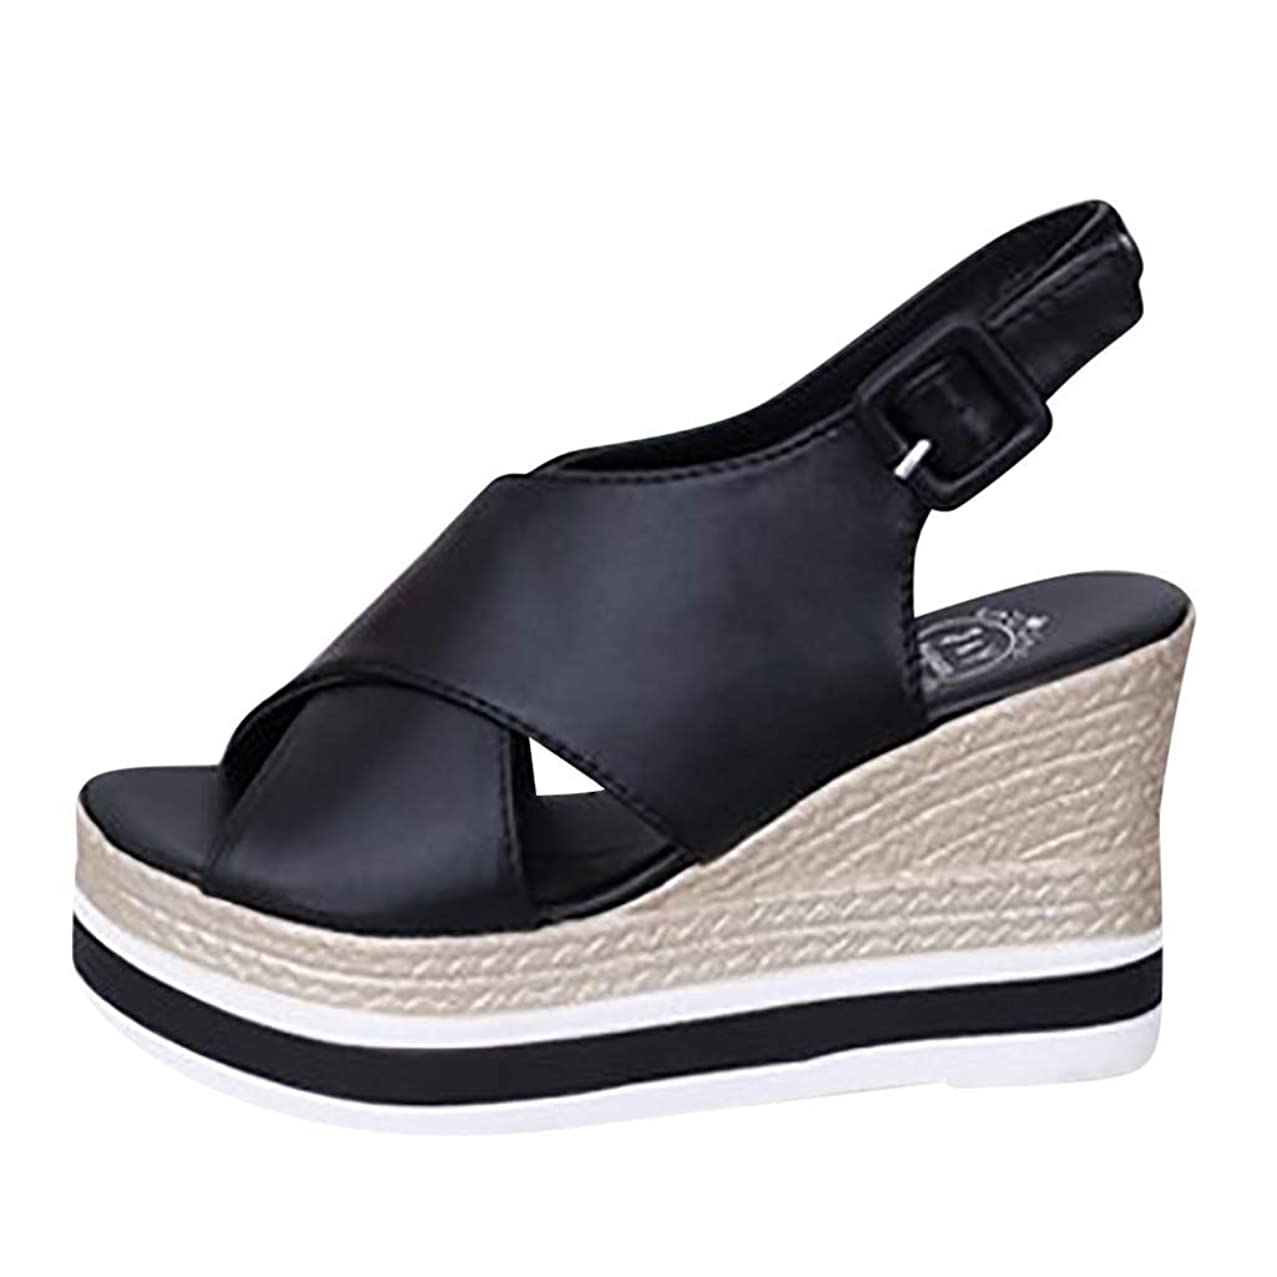 Women's Yonth Girls Slip on Walking Shoes, Jiayit Womens Fashion Wedges Open Toe Ankle Thick Bottom Straps Buckle Roman Sandals Wedge Sandals